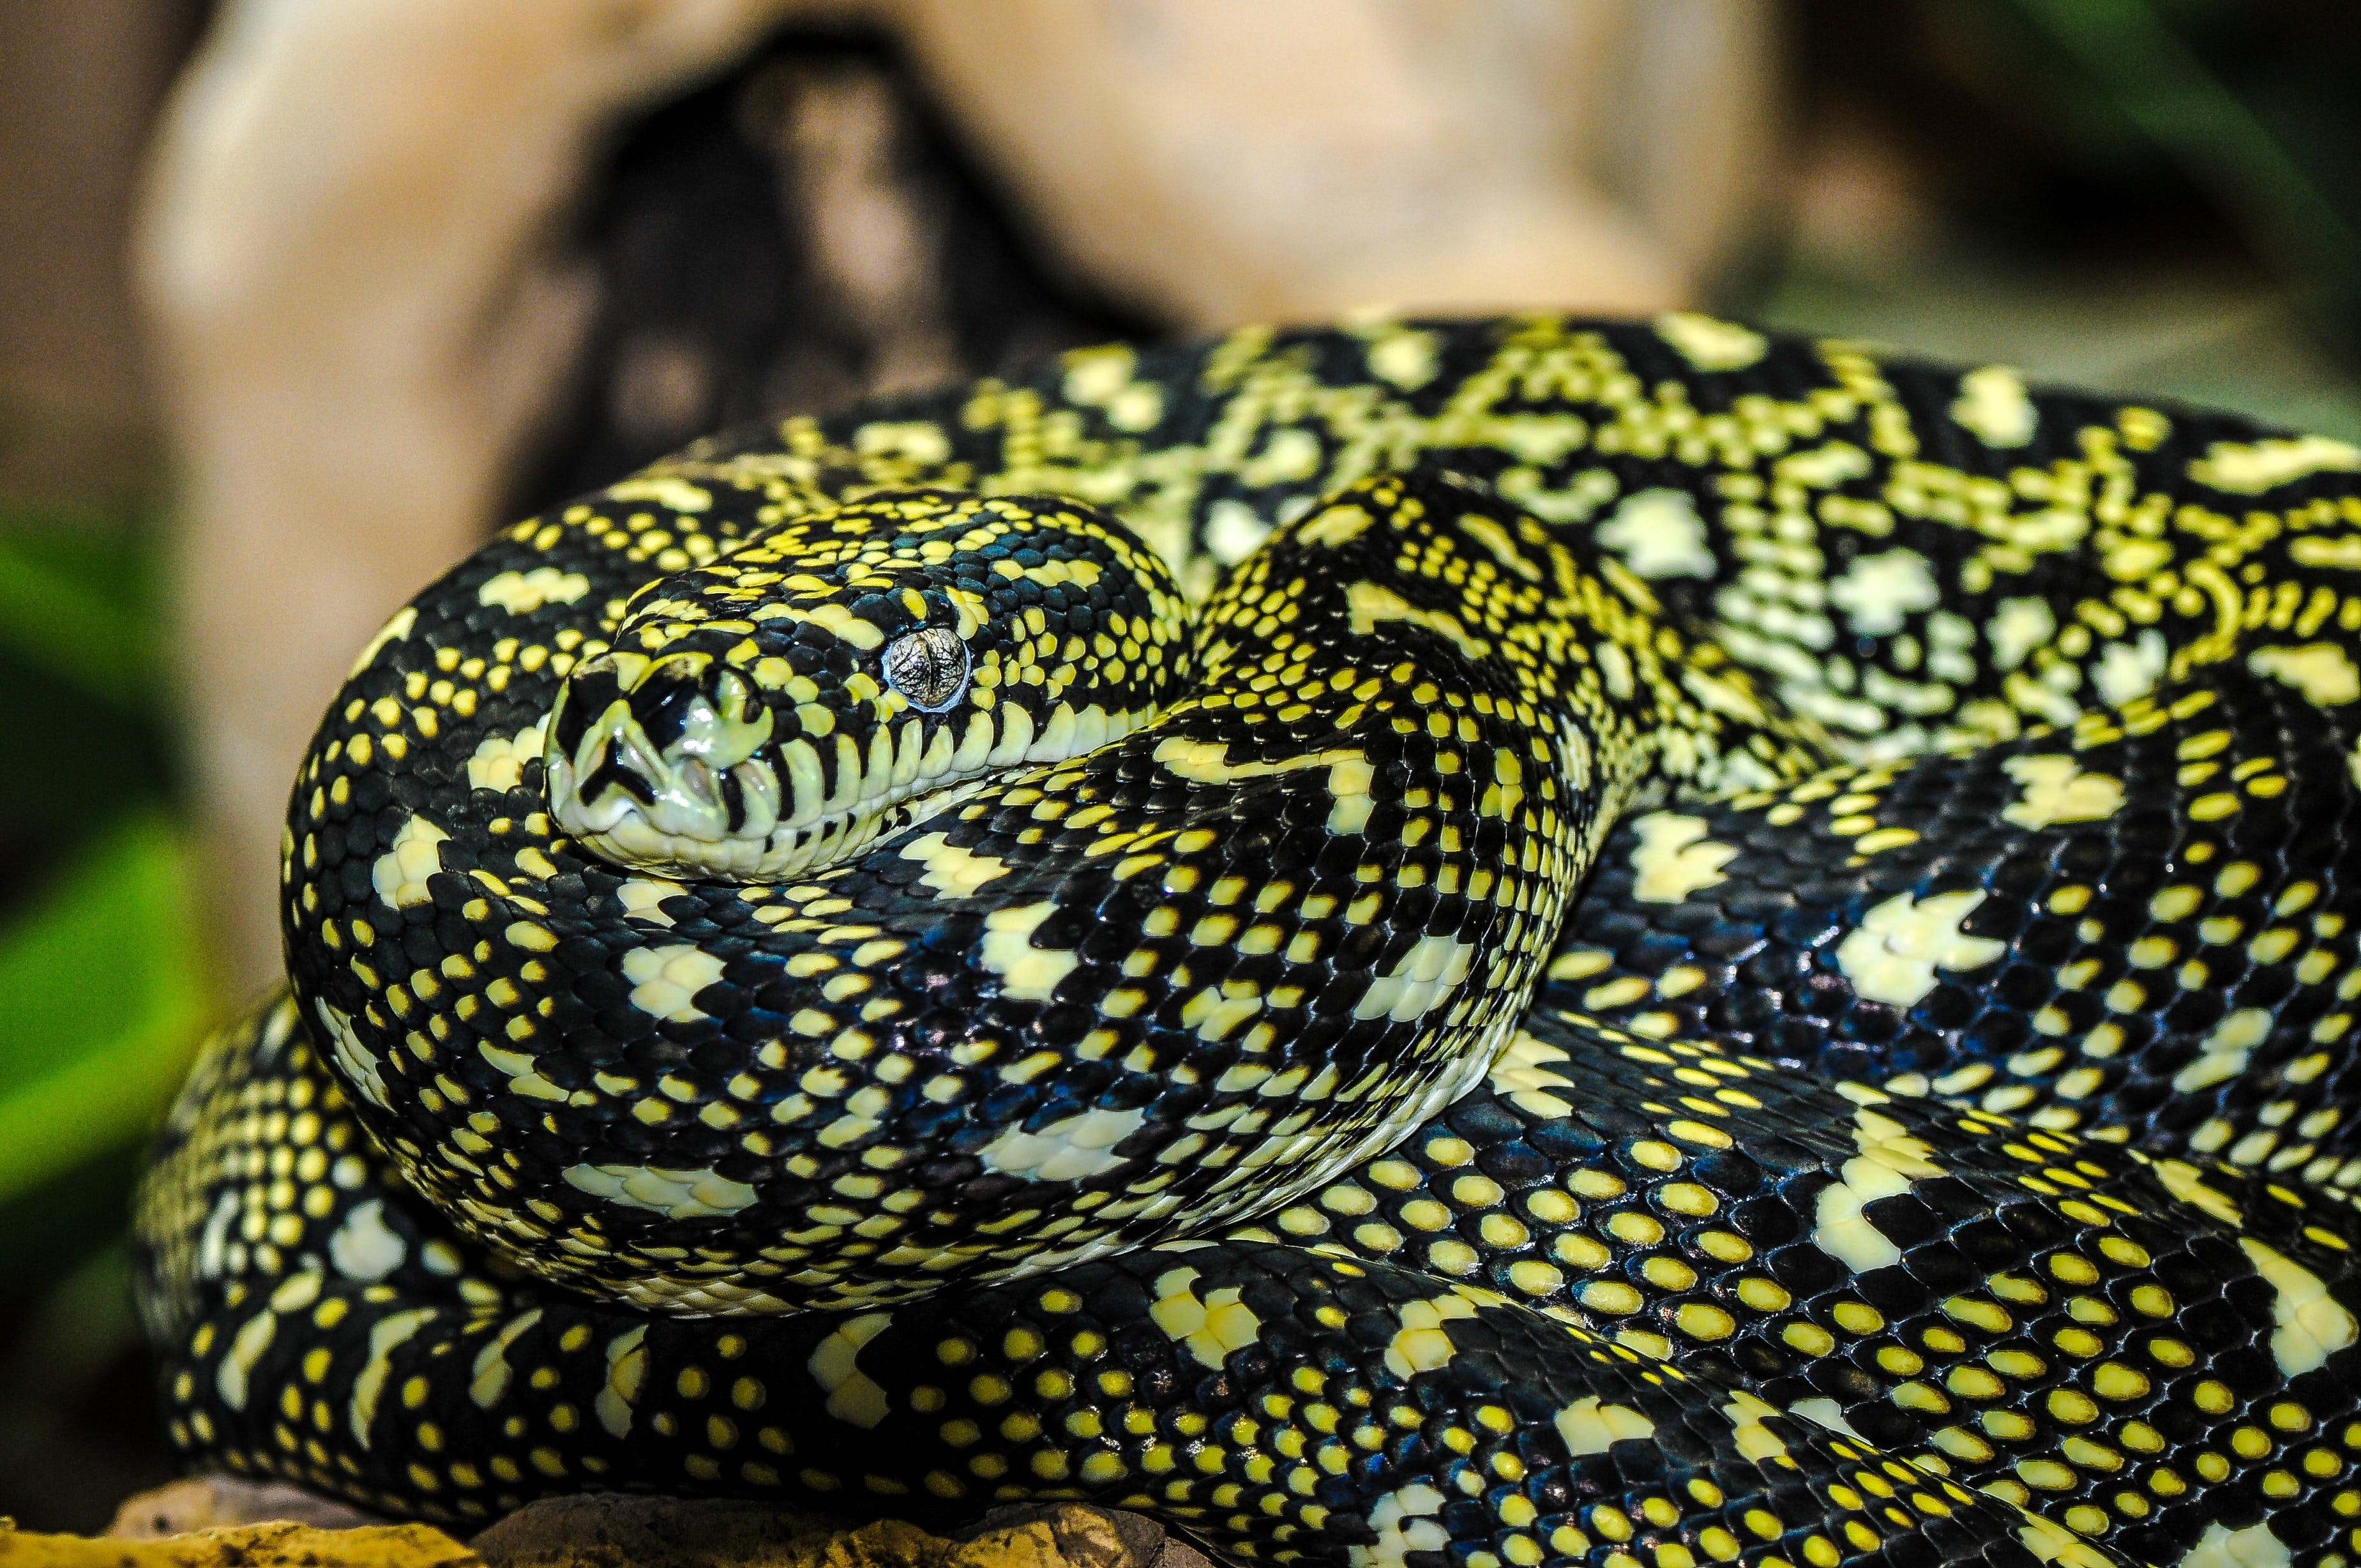 Yellow and Black Snake